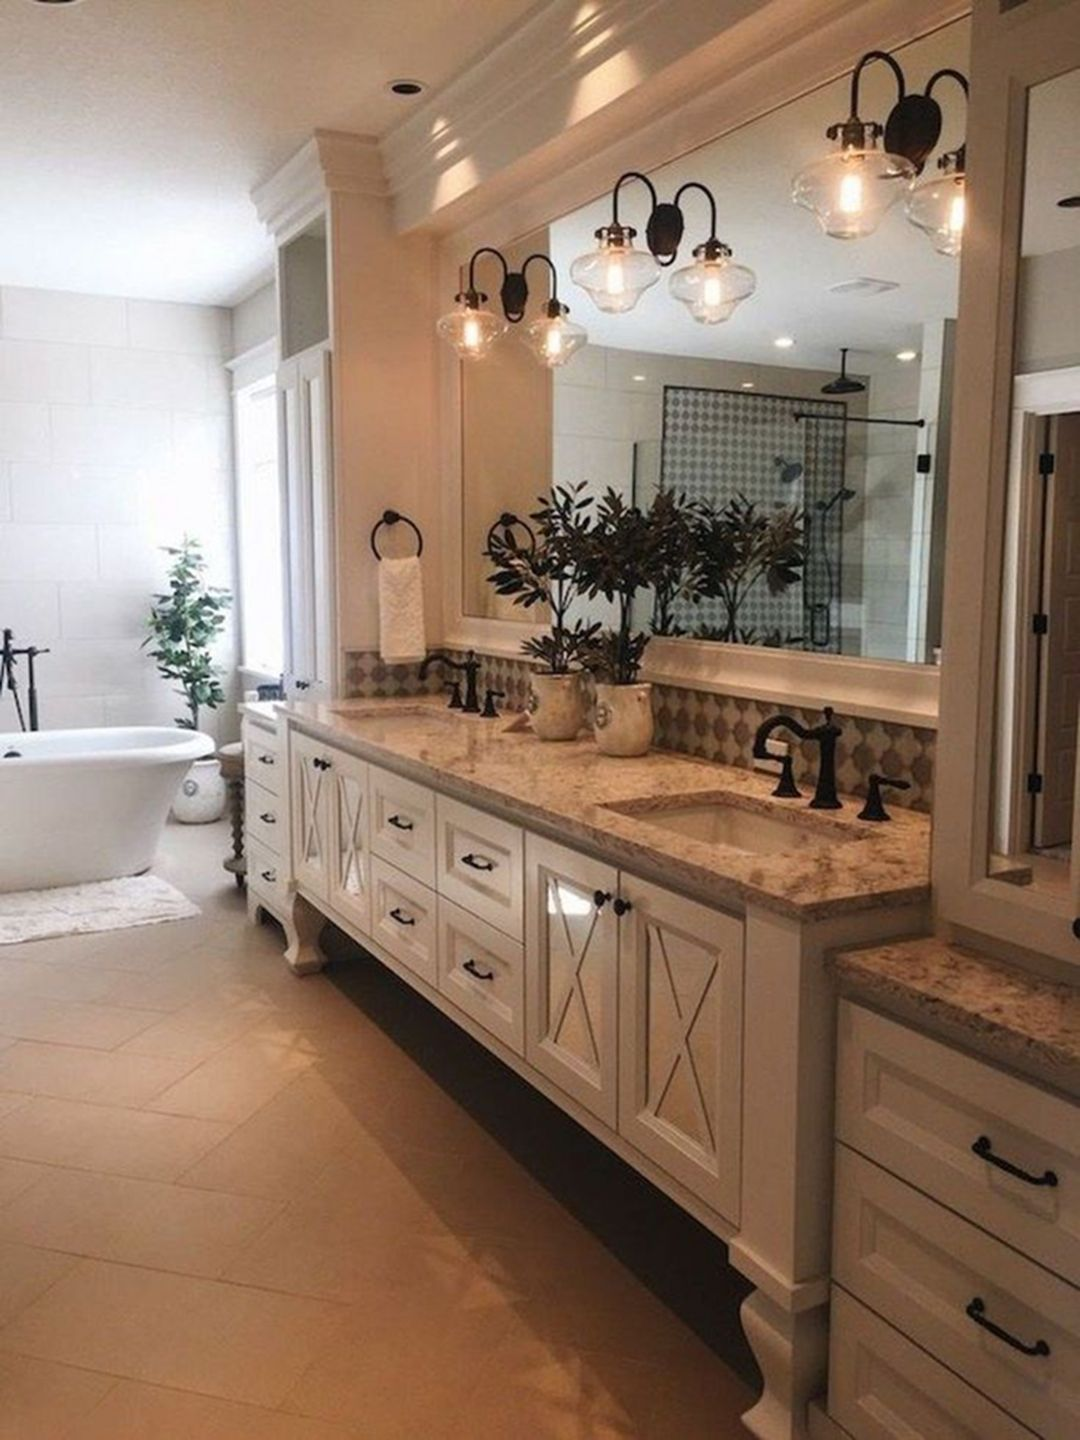 Feel More Comfort While Bathing With Modern Farmhouse Bathroom Ideas Home Diy Ideas Modern Farmhouse Bathroom Bathrooms Remodel Bathroom Remodel Pictures